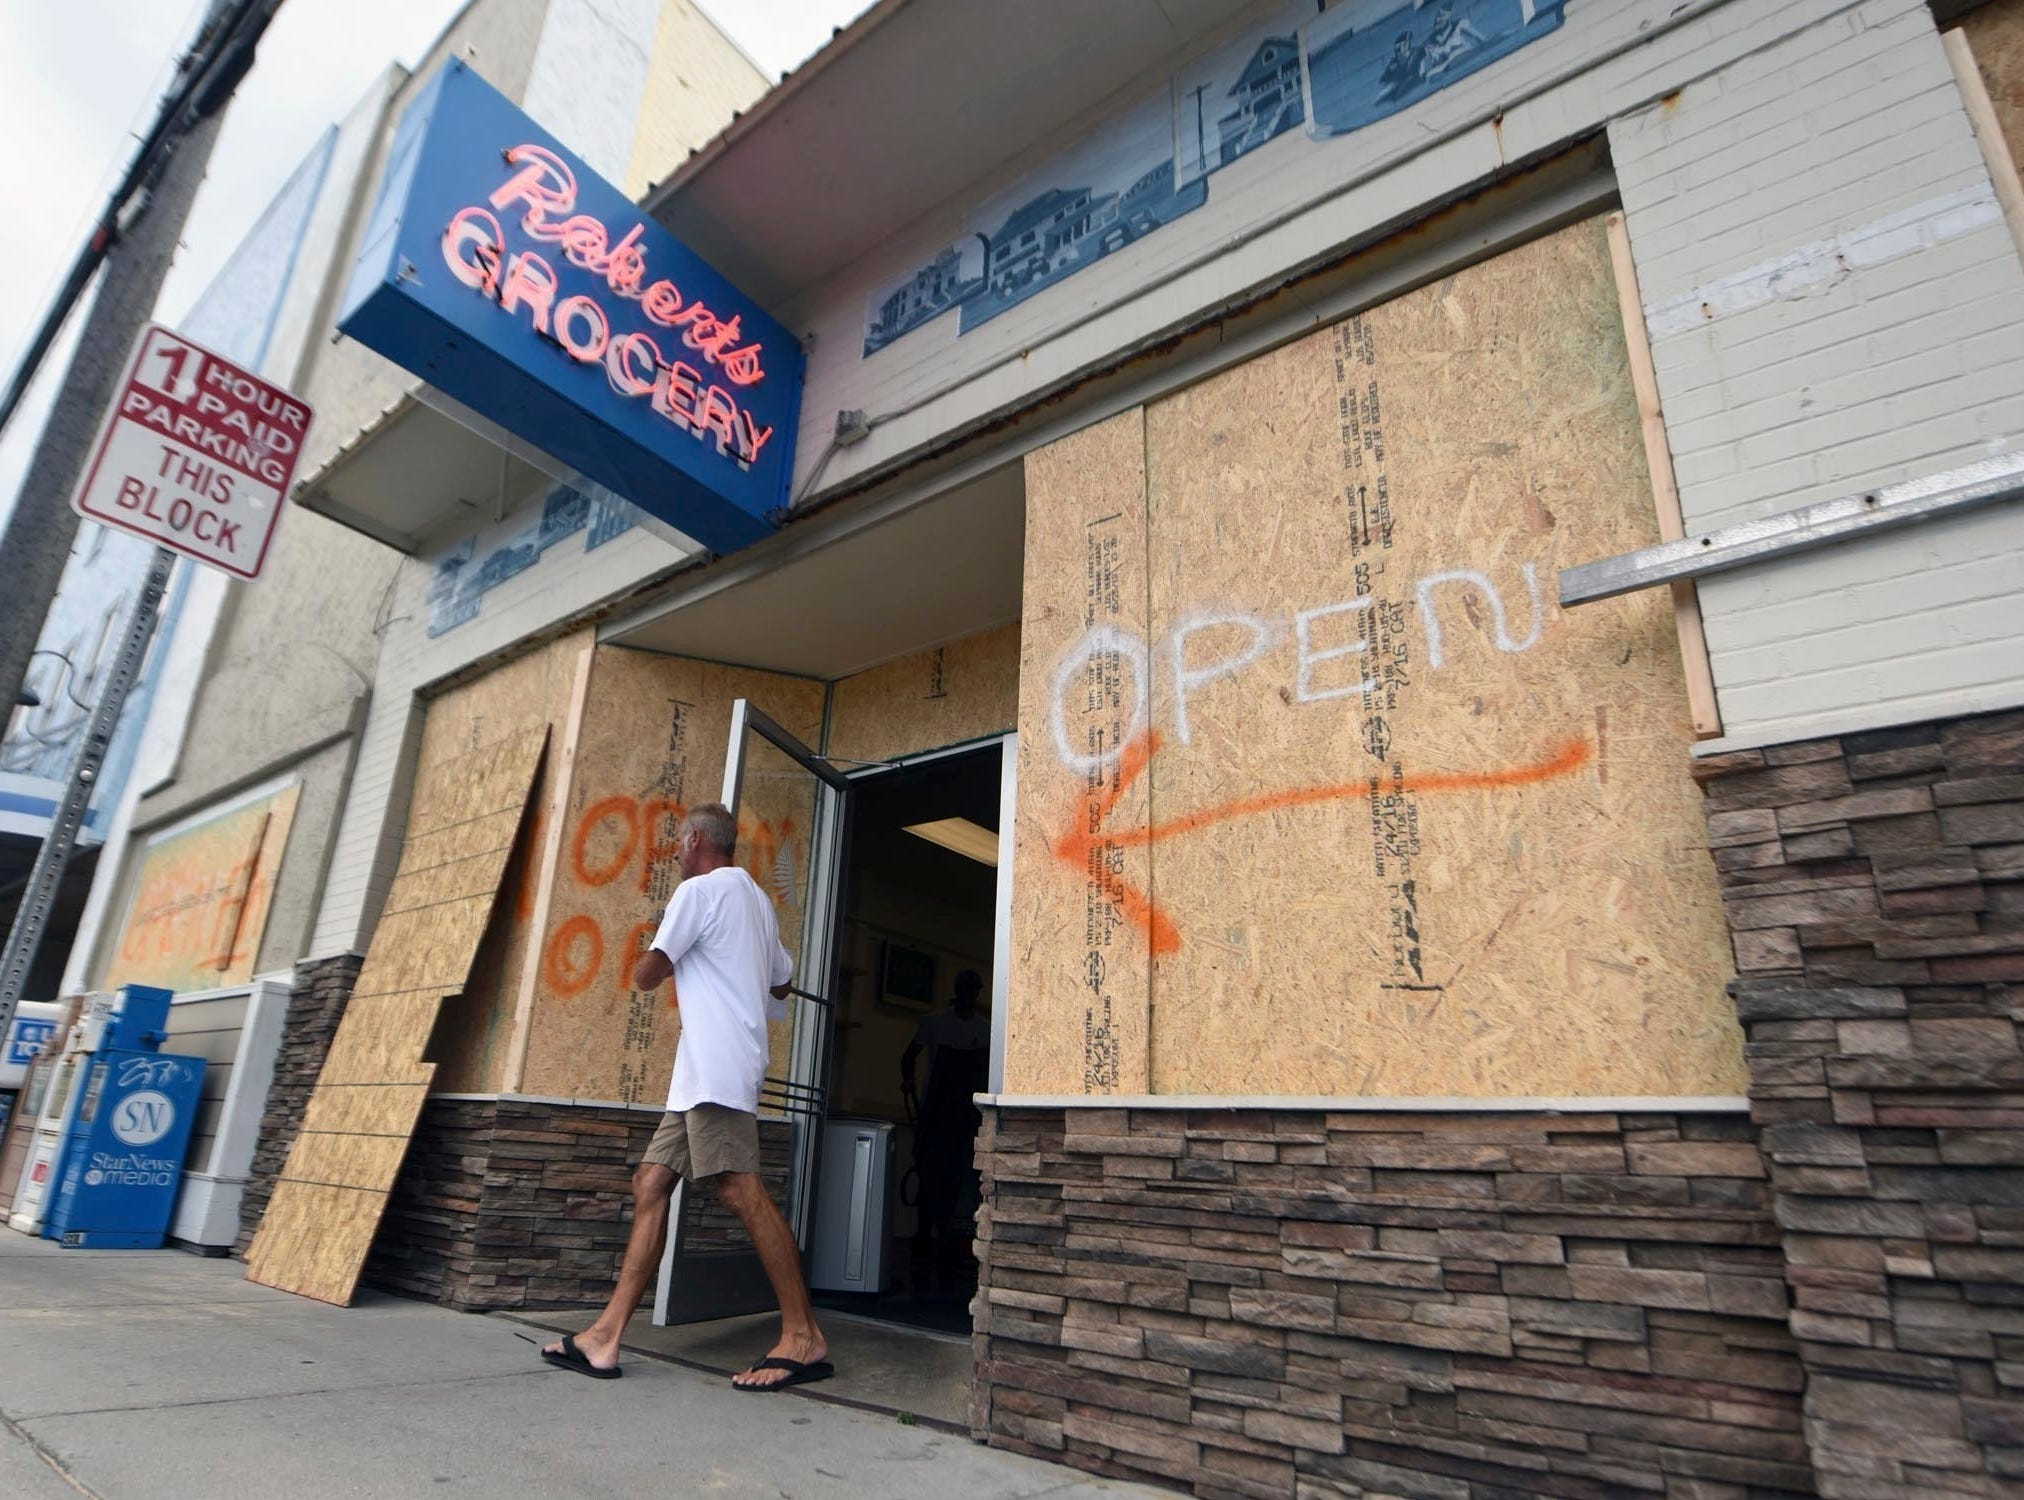 Aman walks out of the boarded up Robert's Grocery in Wrightsville Beach, N.C., in preparation for Hurricane Florence on Tuesday, Sept. 11, 2018.